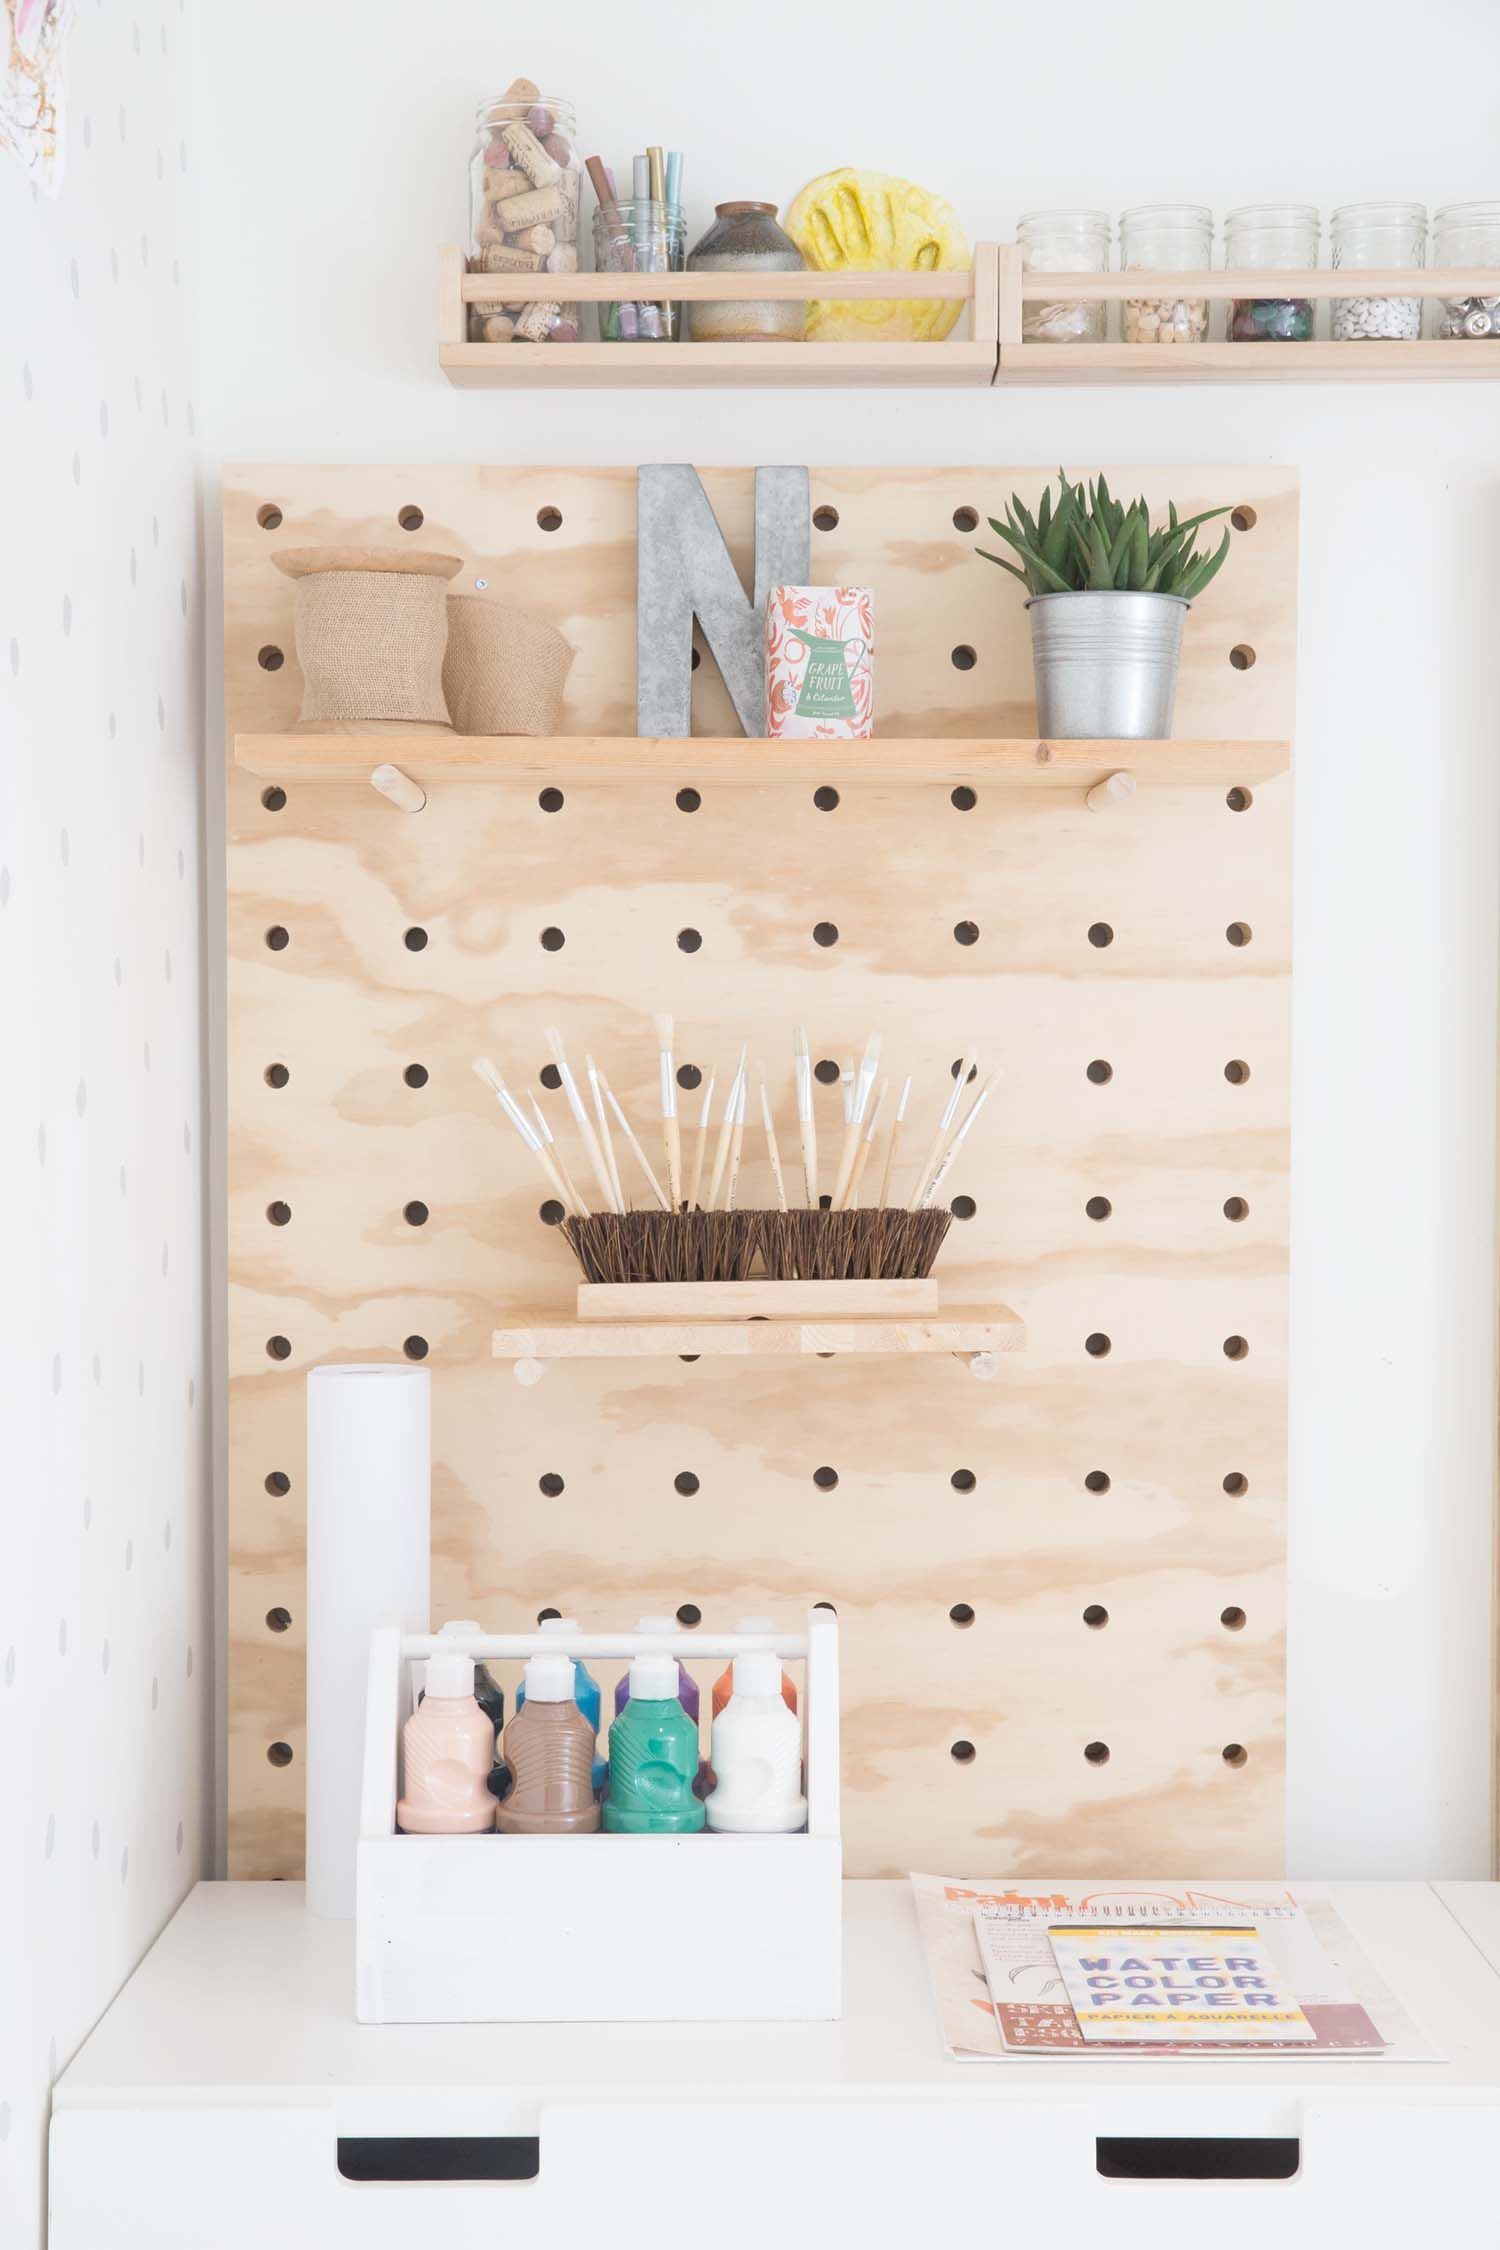 Peg Board Canada Diy Giant Pegboard For Kids Art Studio In Vancouver Canada